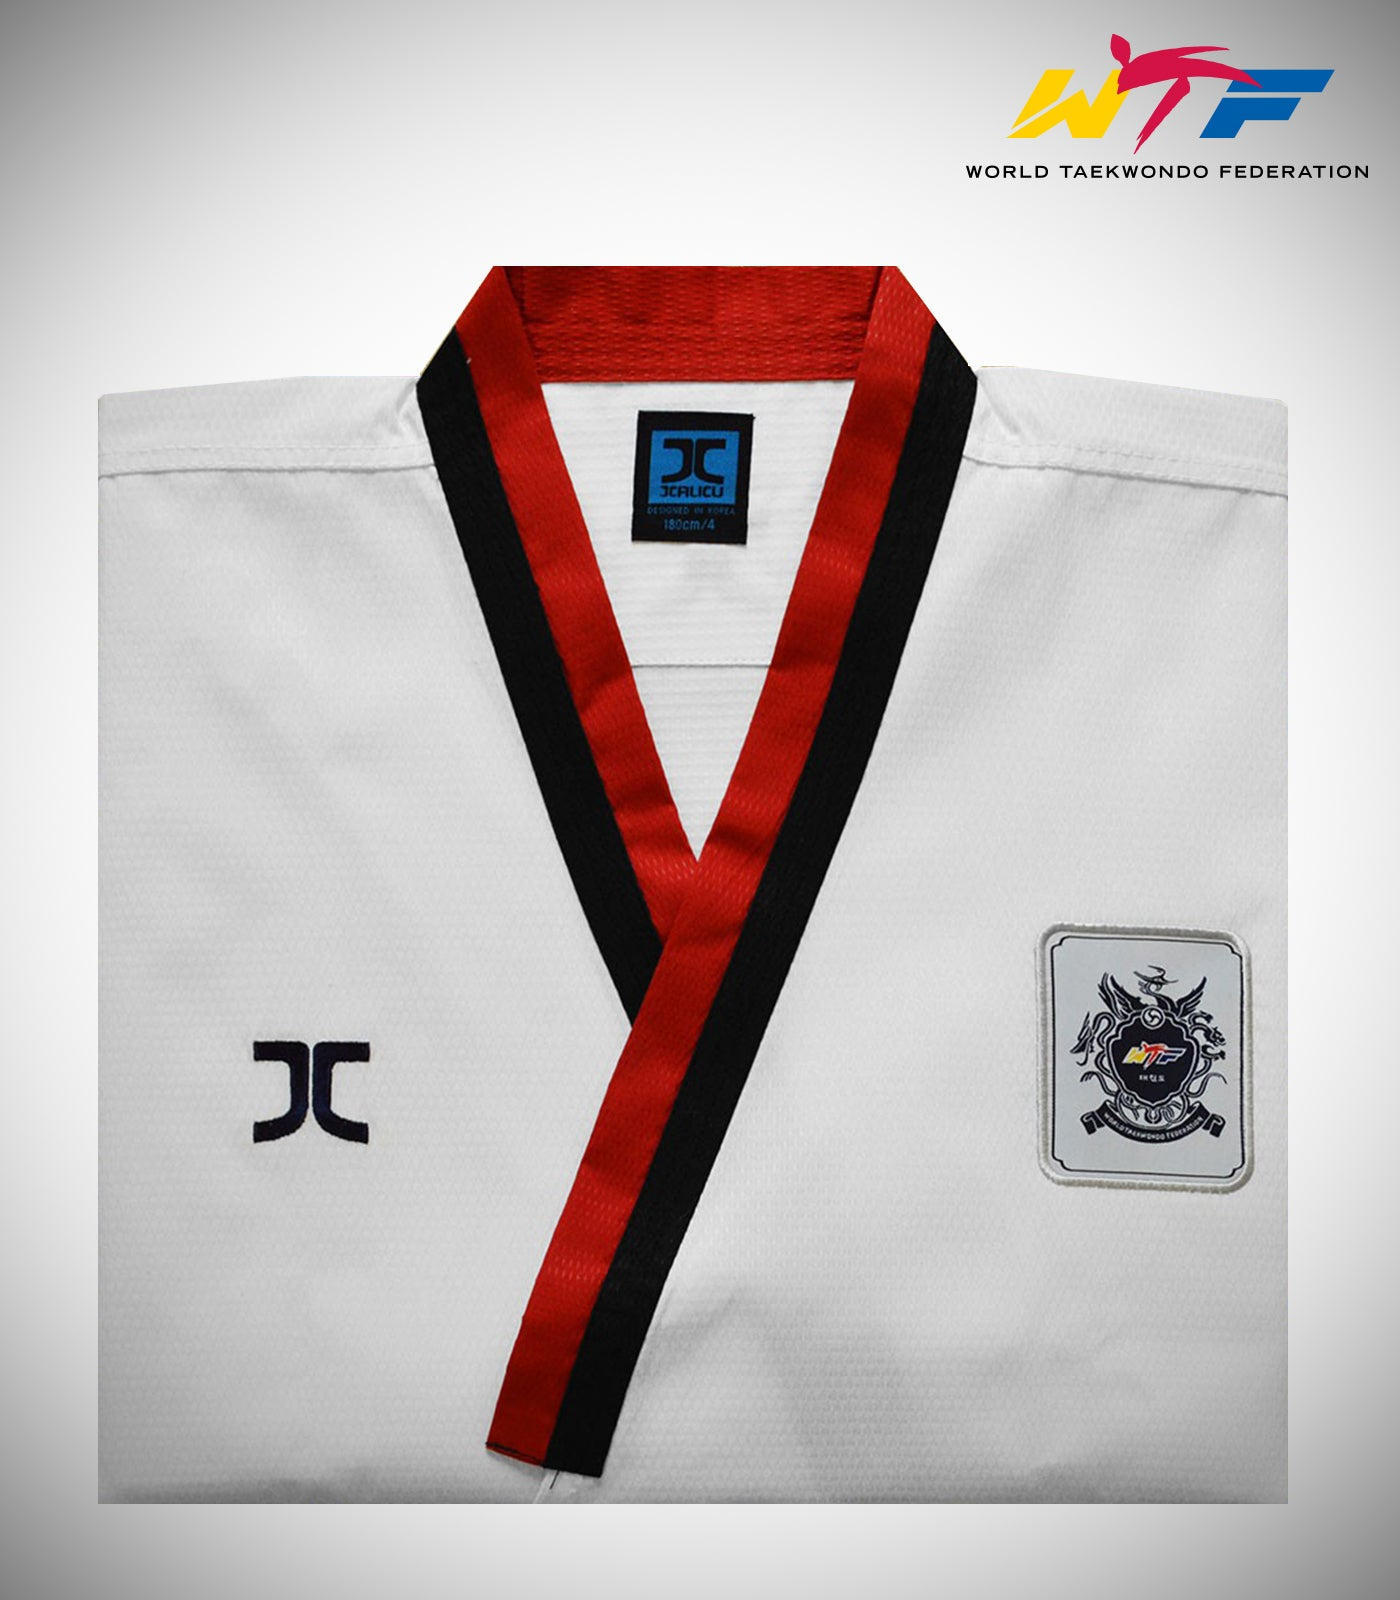 JC YOUTH MALE POOMSAE DIAMOND UNIFORM